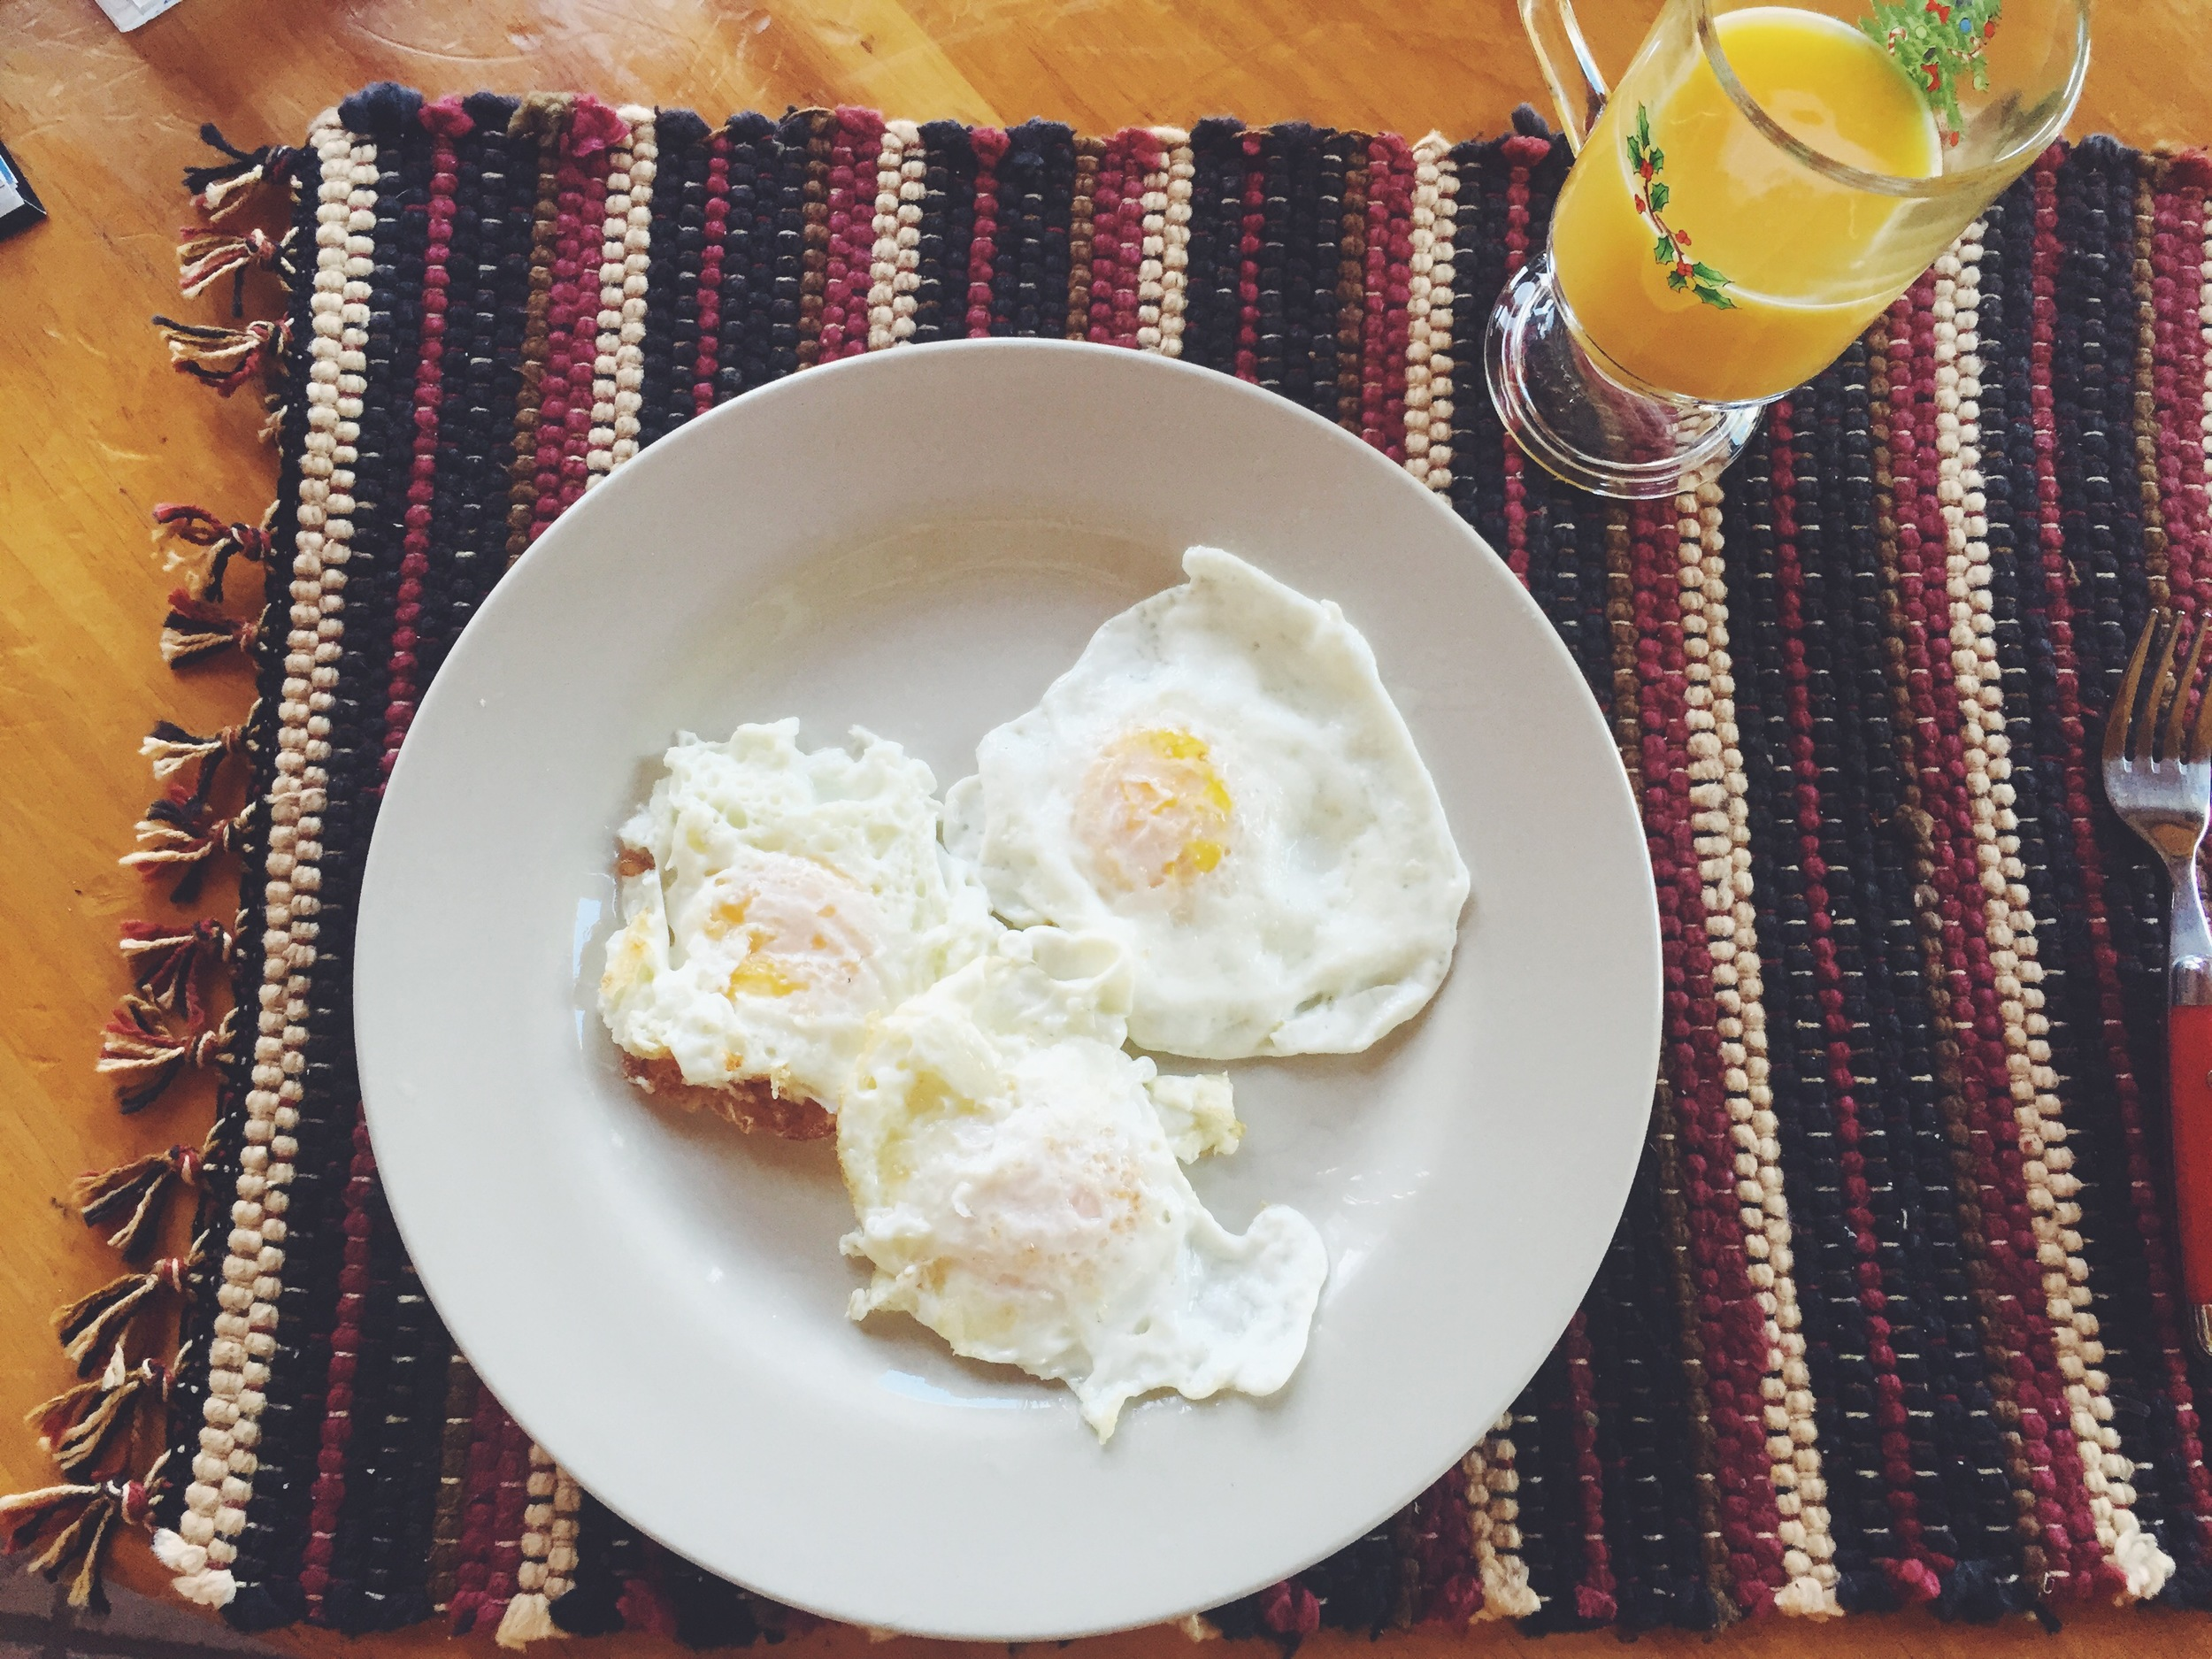 Working on perfecting my fried eggs...also its never too early for a Christmas glass